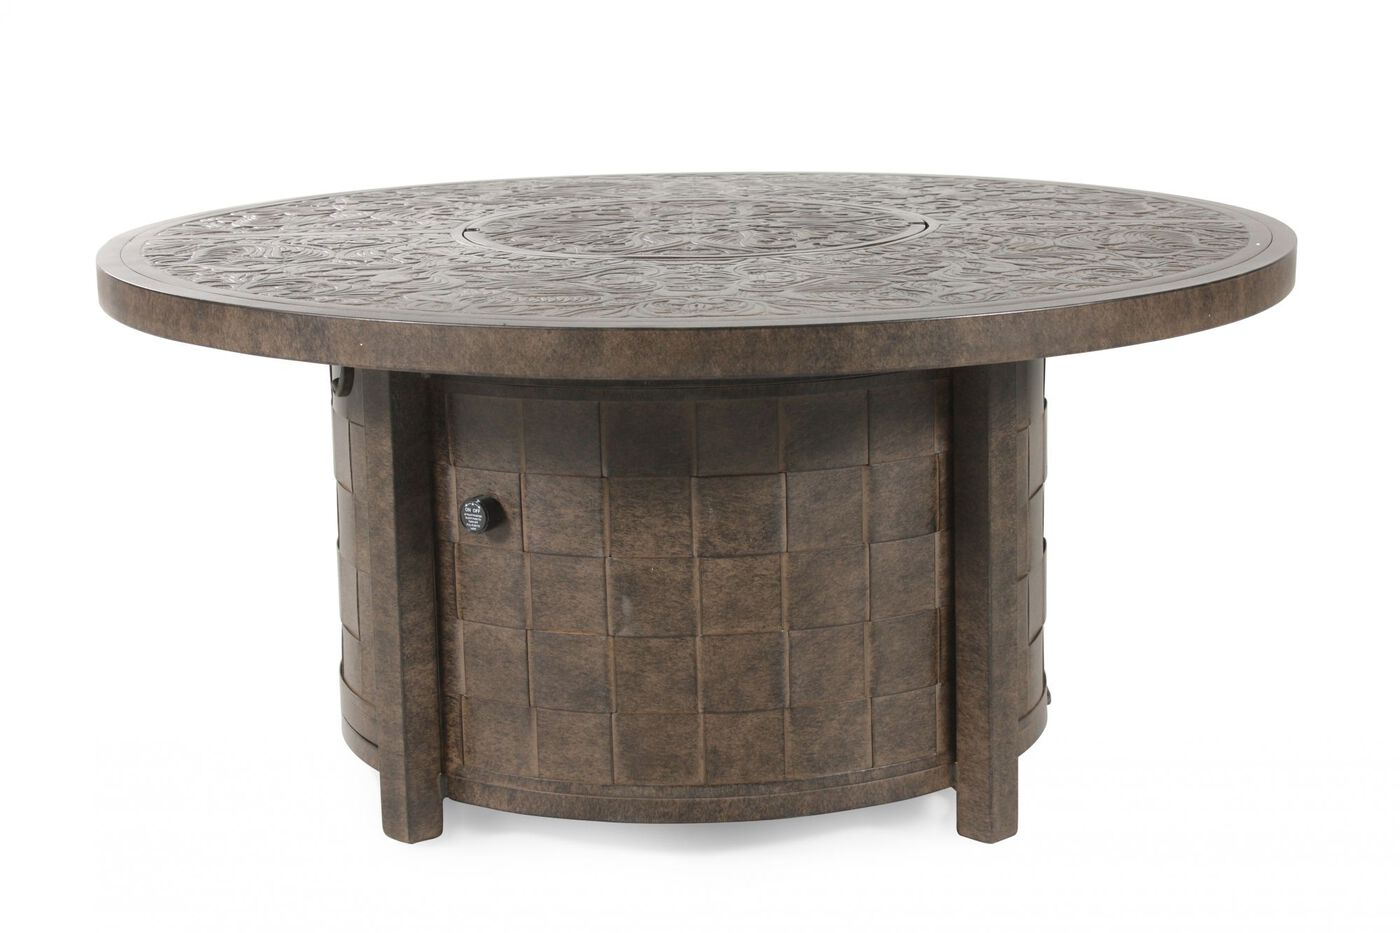 Castelle Riviera Patio Fire Pit Coffee Table Mathis Brothers Furniture